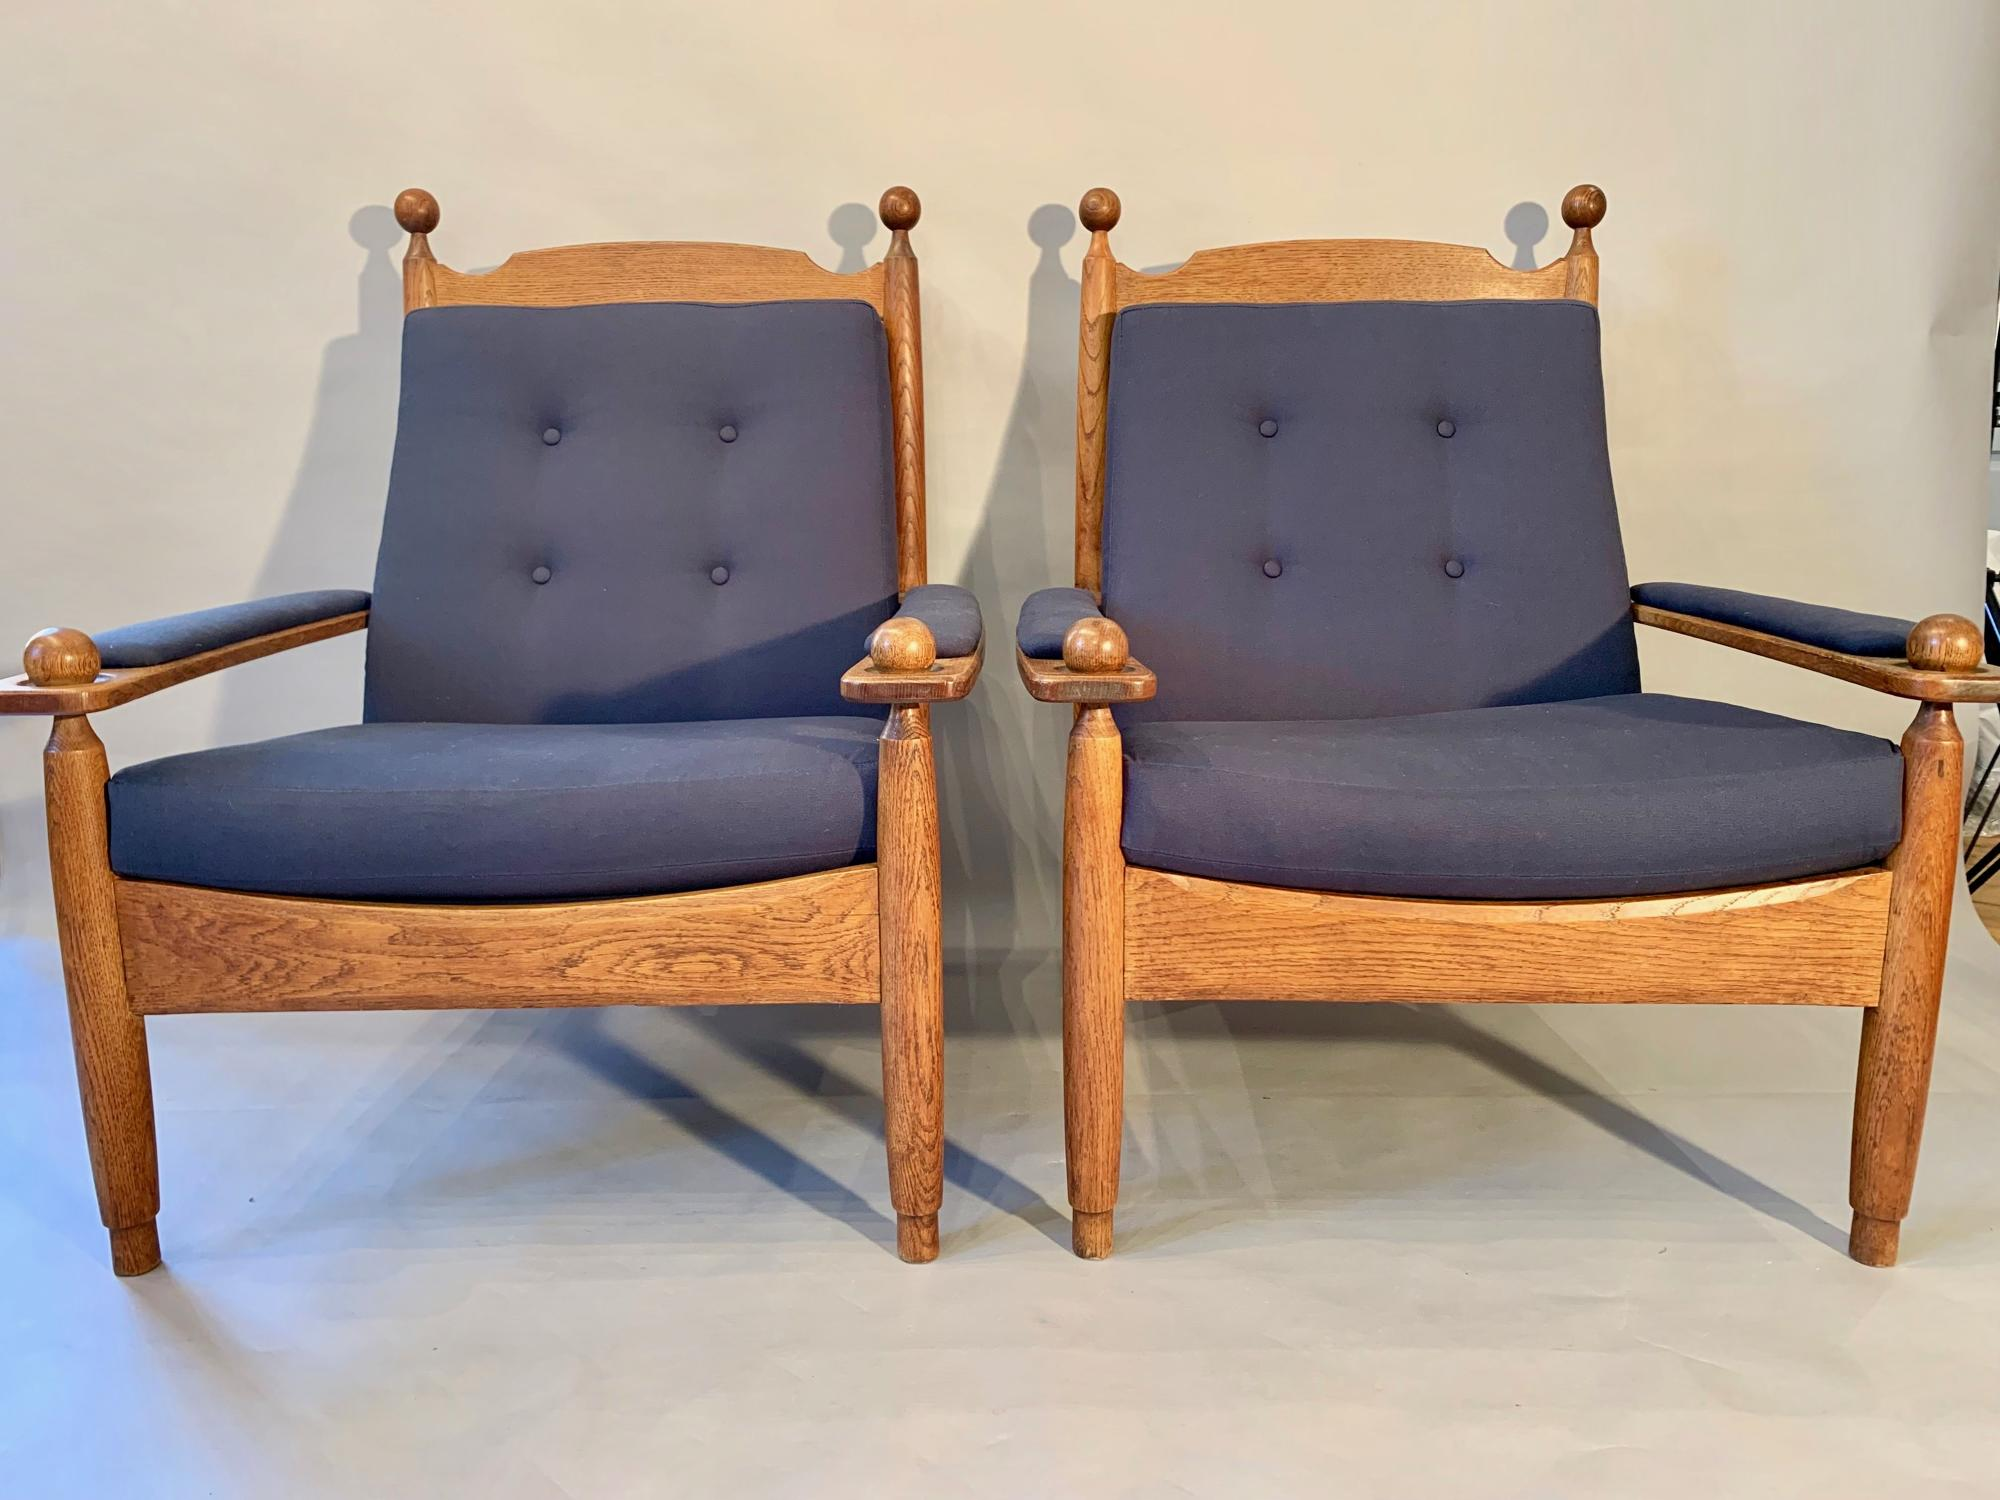 Pair of Oak framed easy chairs